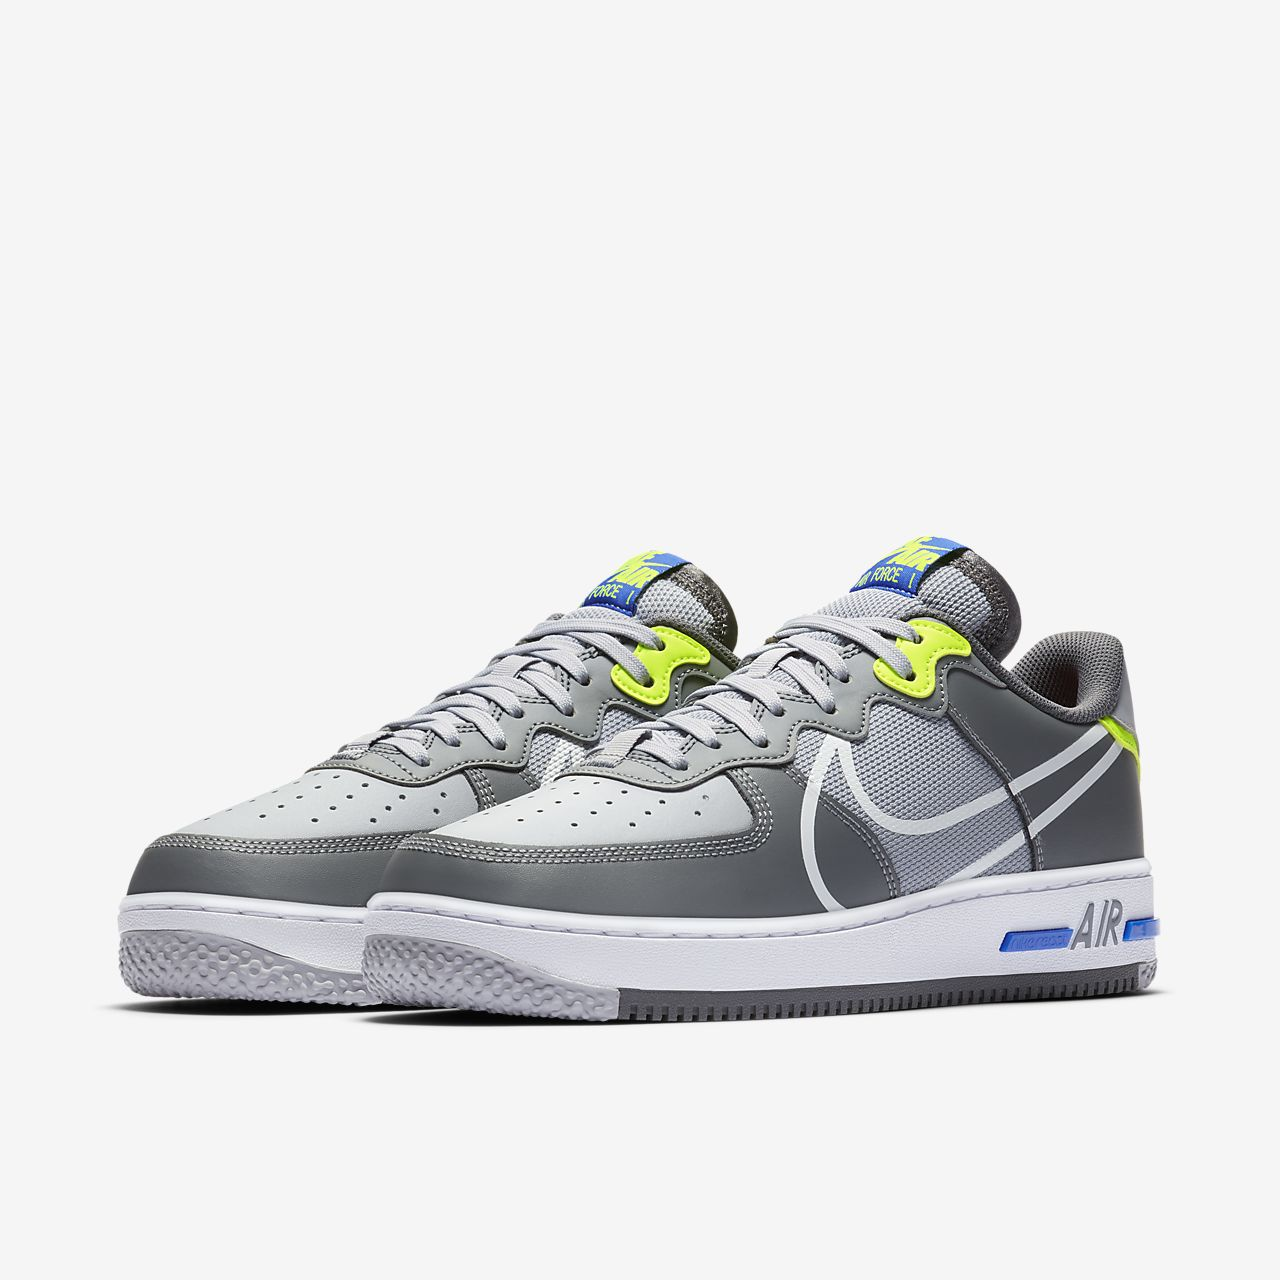 nike air force 1 uomi